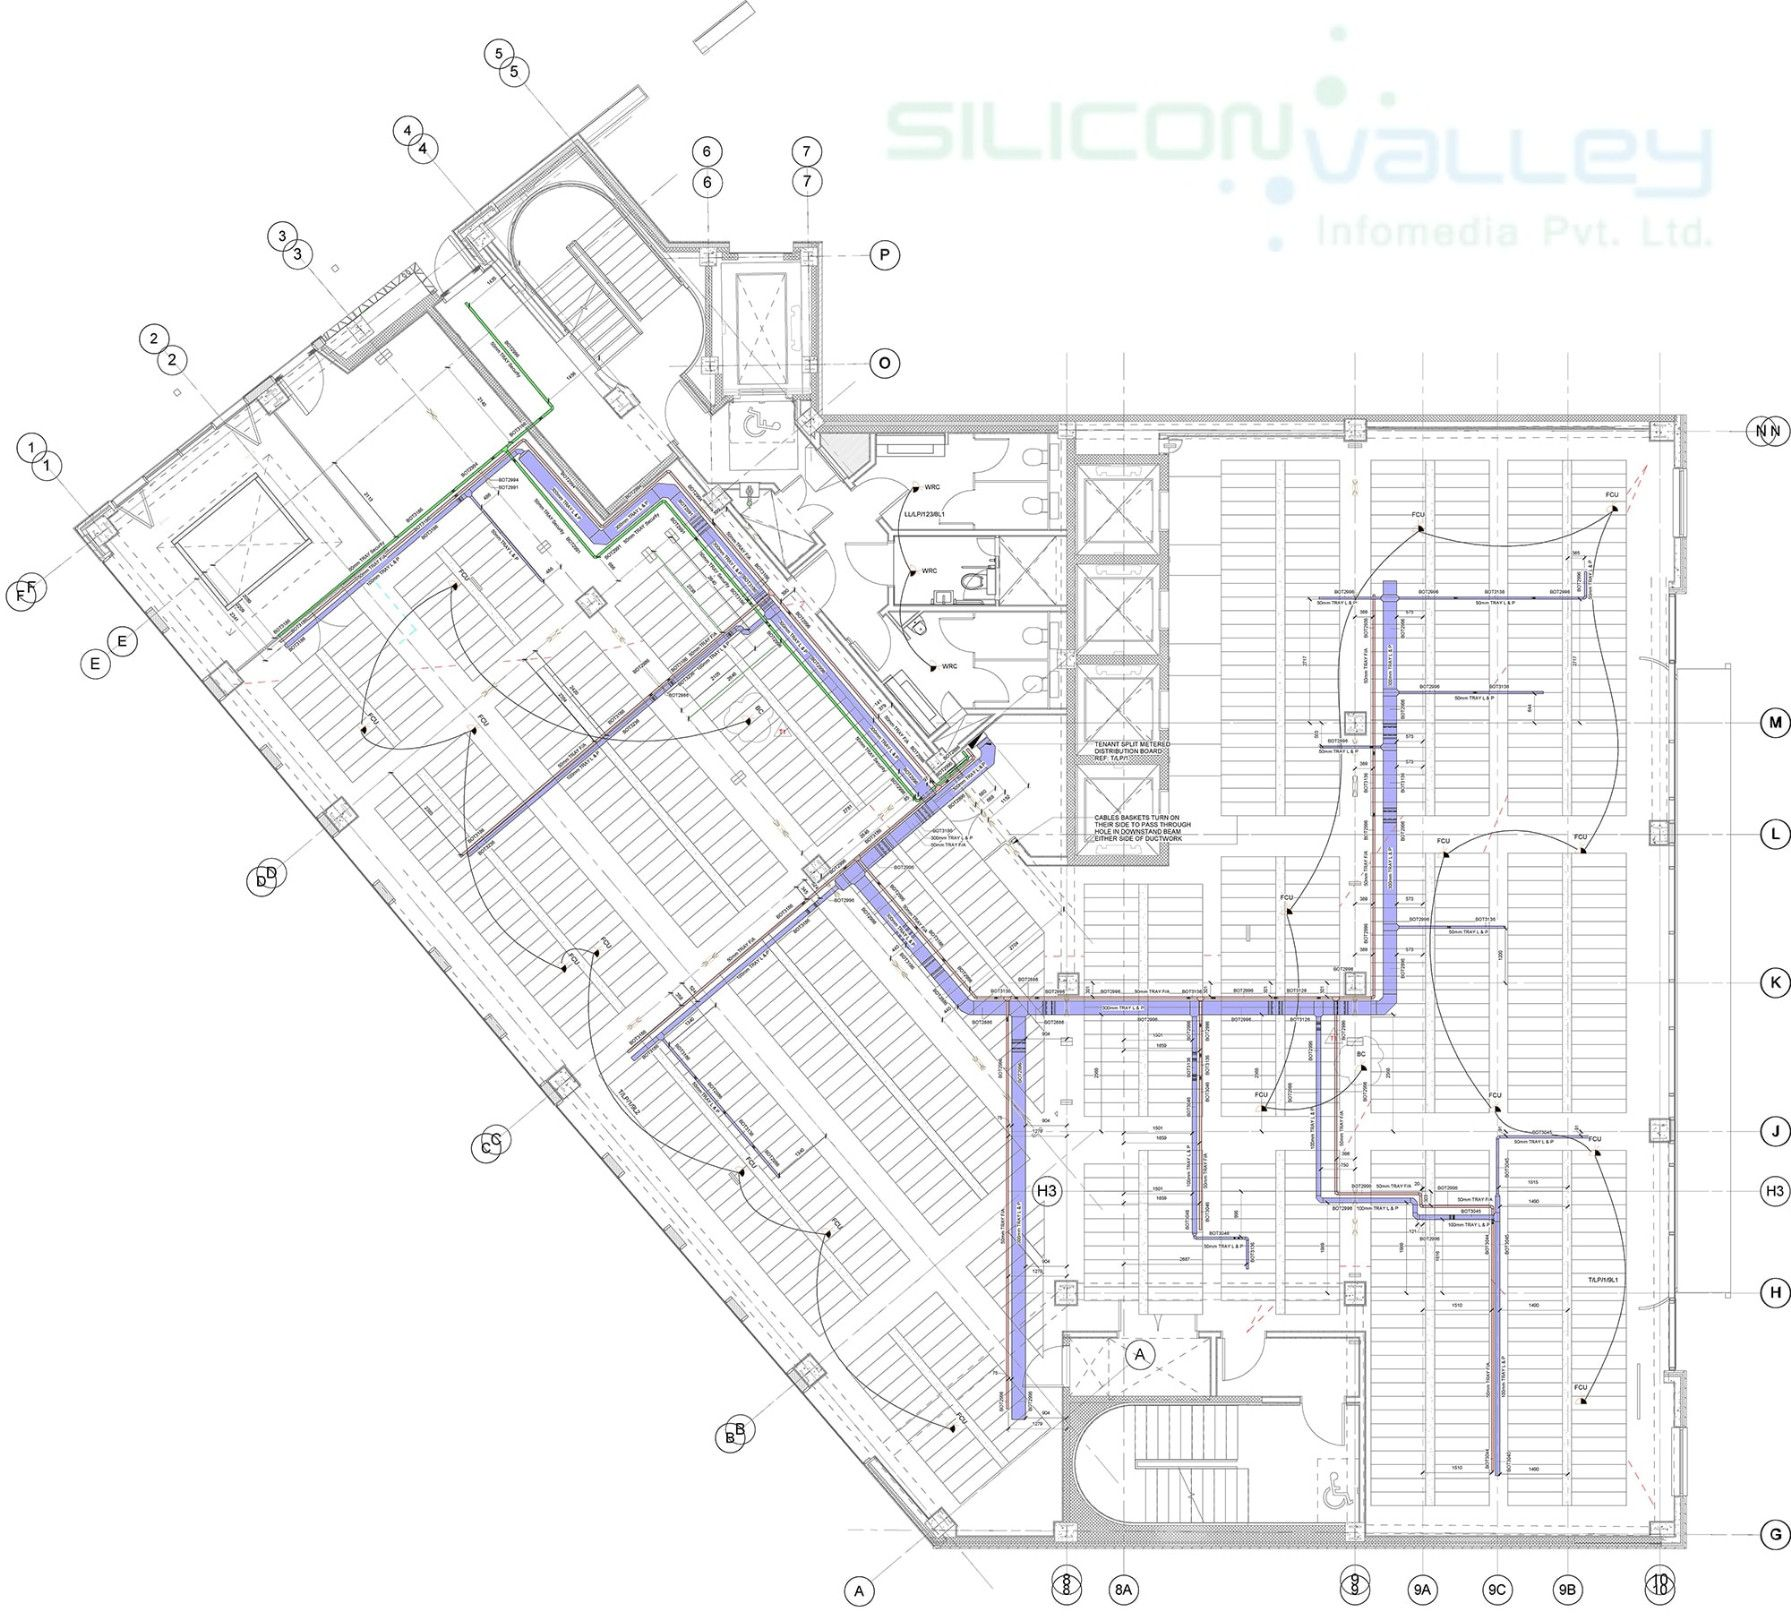 hight resolution of  silicon info provides mep shop drawing detailing services for